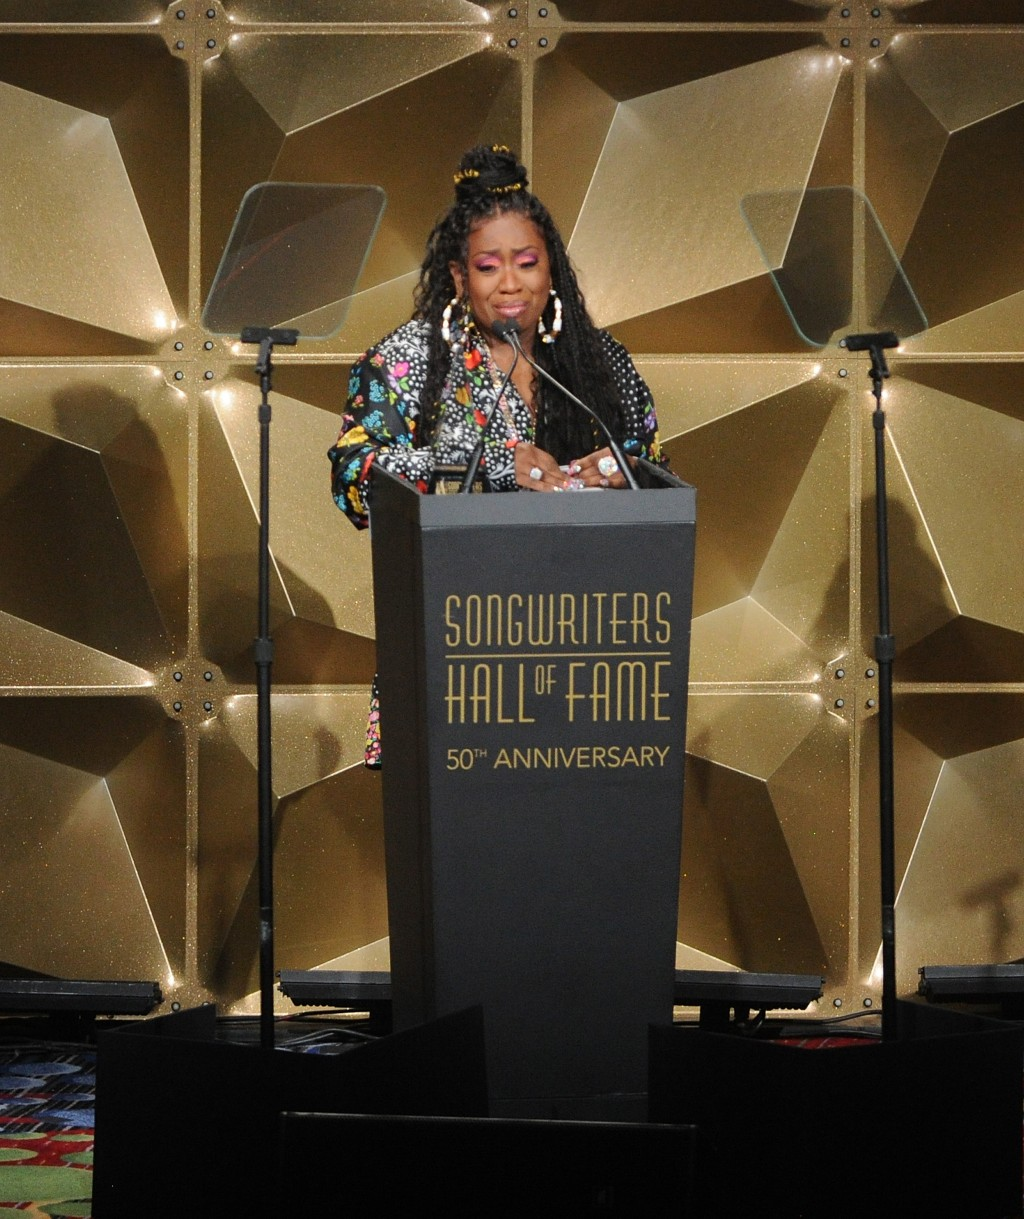 Missy Elliott speaks at the 50th annual Songwriters Hall of Fame induction and awards ceremony at the New York Marriott Marquis Hotel on Thursday, Jun